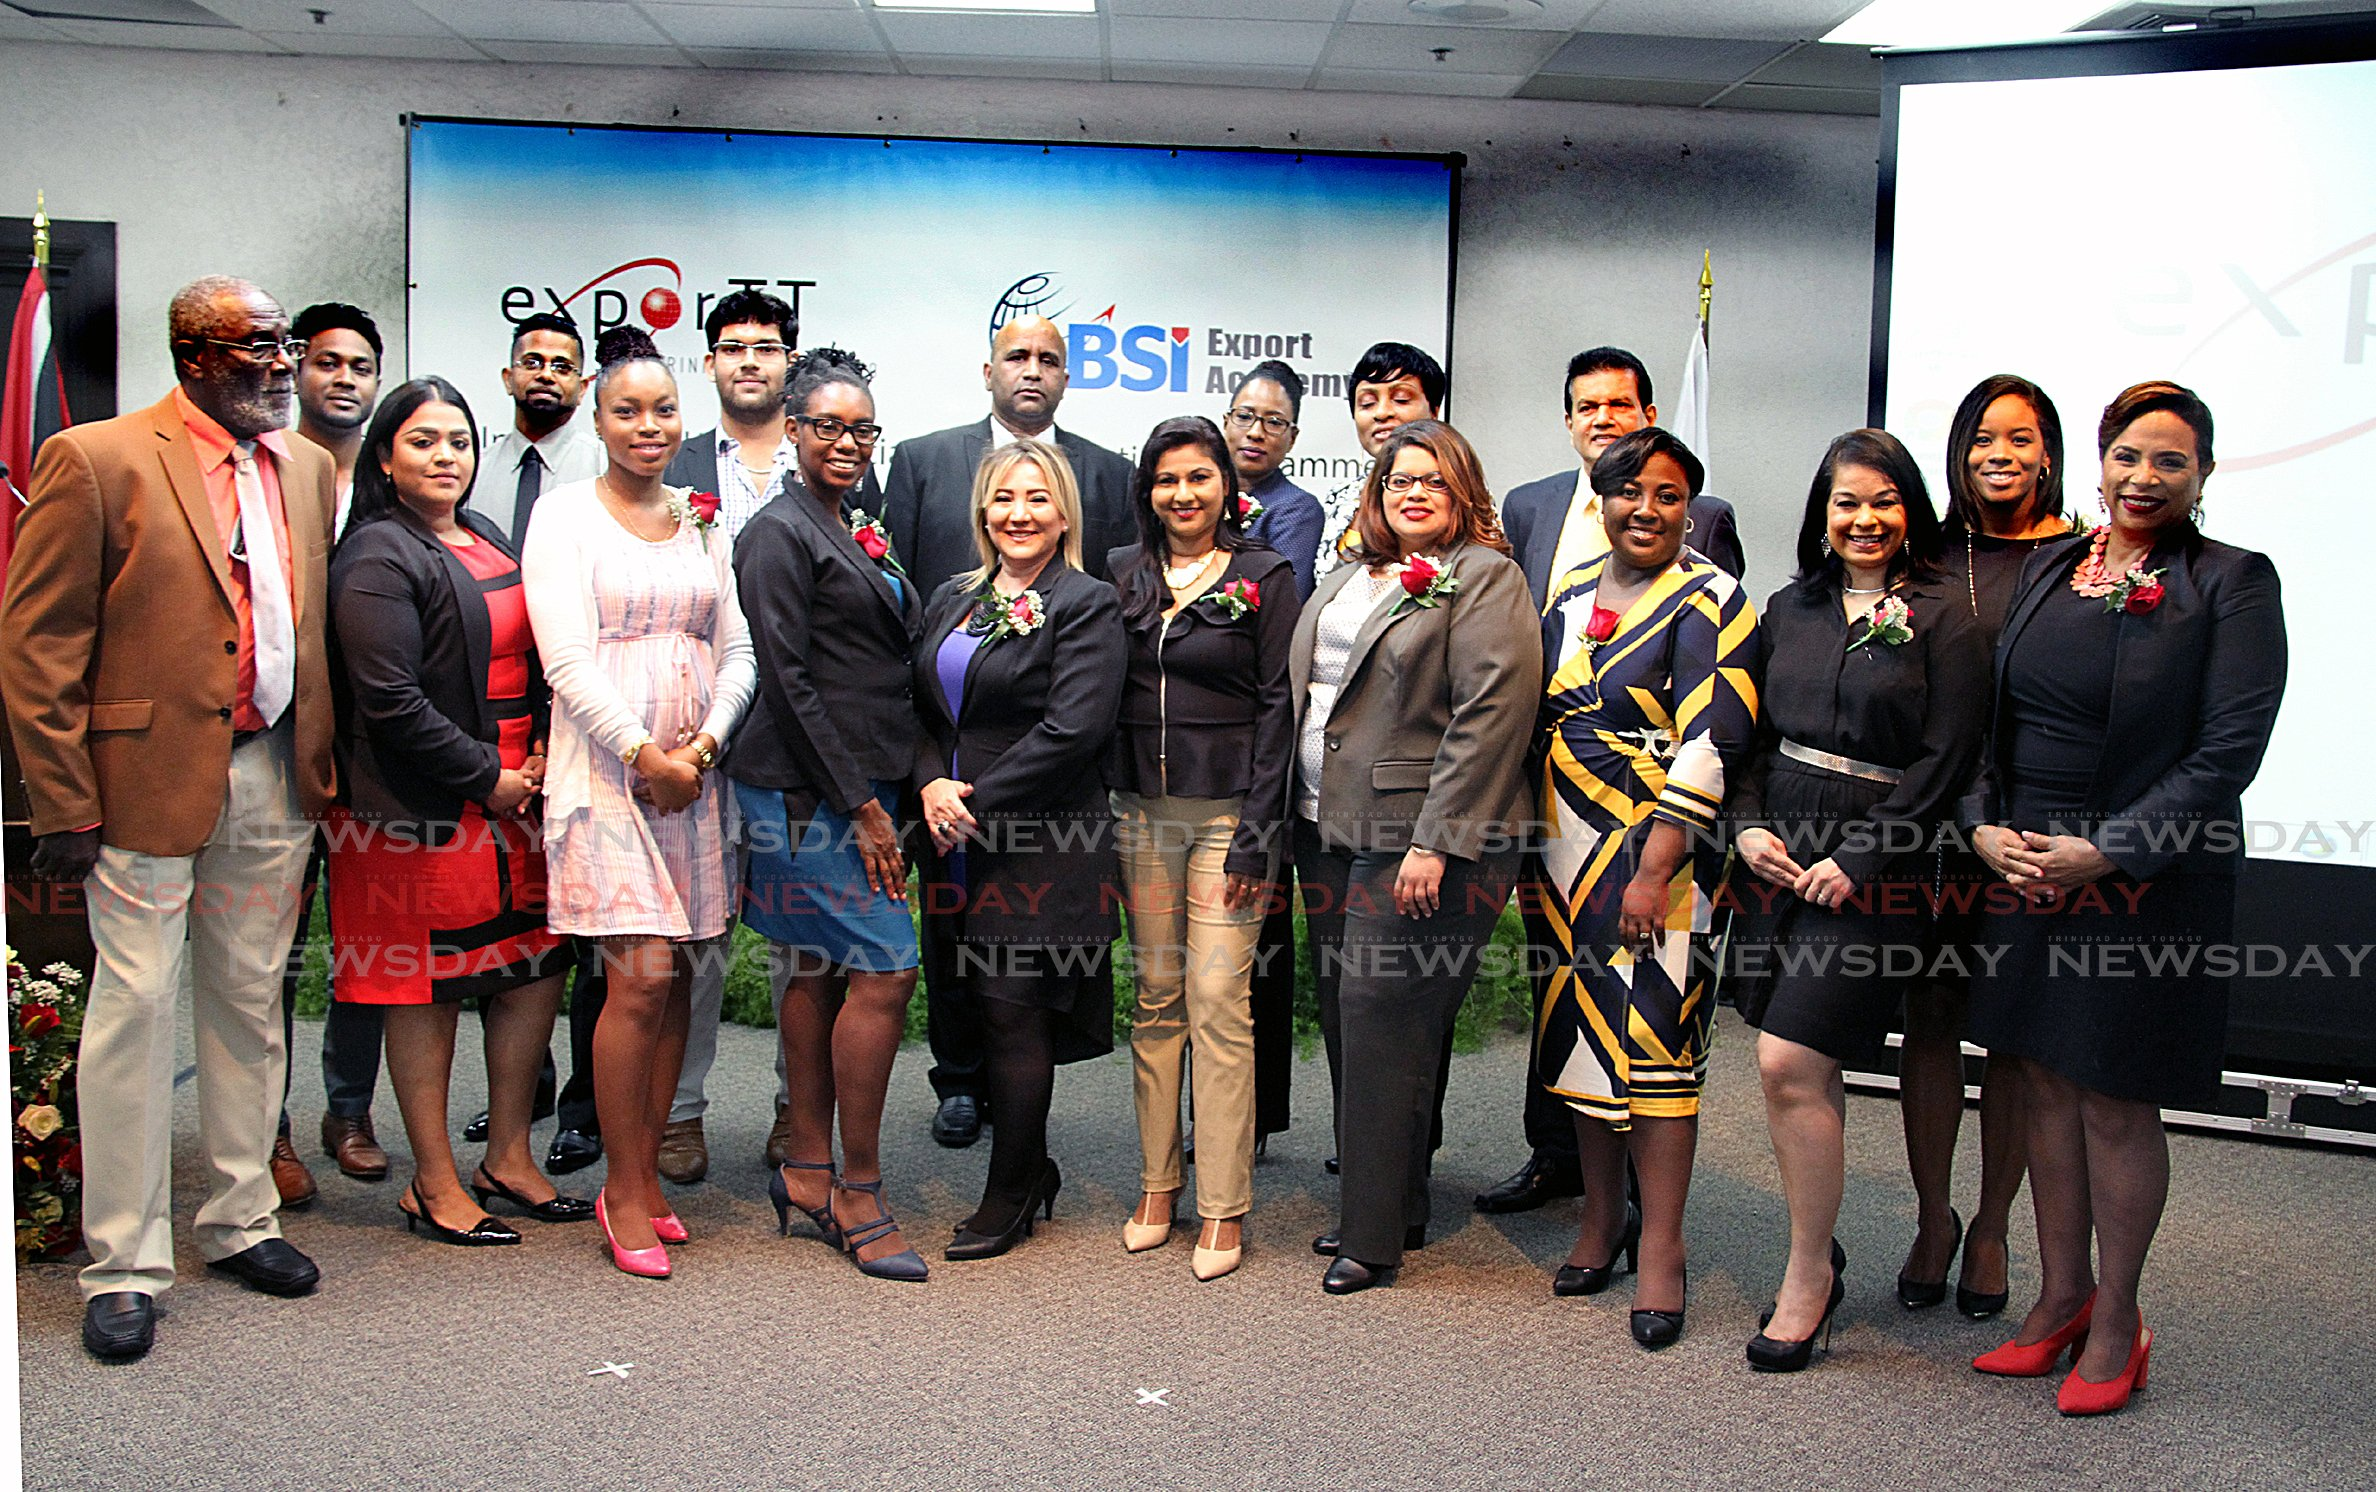 Class of 2017 of the the International Trade Specialist Accreditation Programme of the eBSI Export Academy with exportTT's  CEO Dietrich Guichard middle back row posing for a group photo during their graduation ceremony Friday evening at the Chamber of Commerce building Westmoorings. PHOTO SUREASH CHOLAI